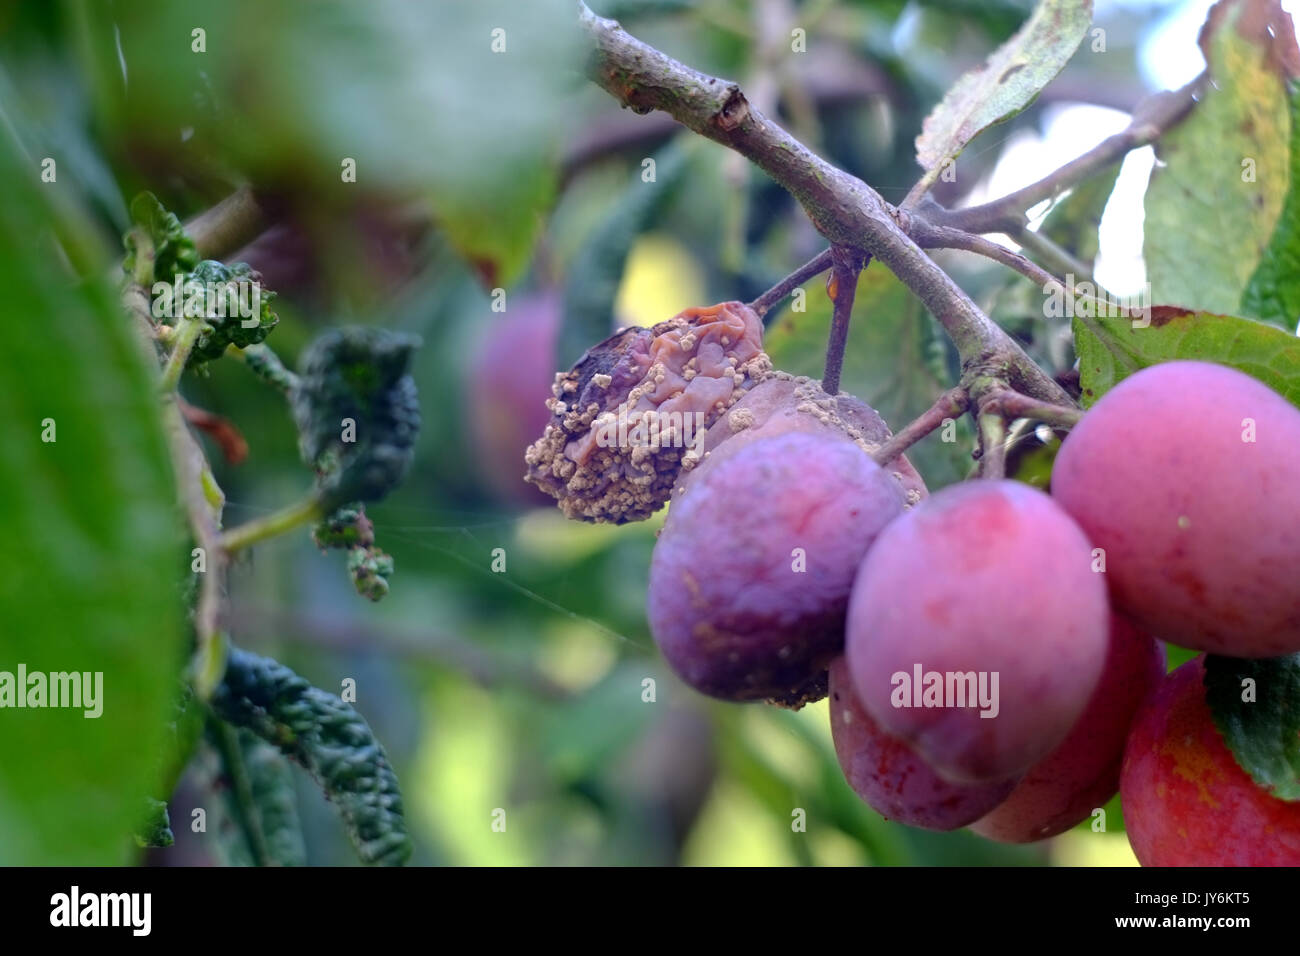 Victoria plums showing signs of disease and fruit rot. - Stock Image